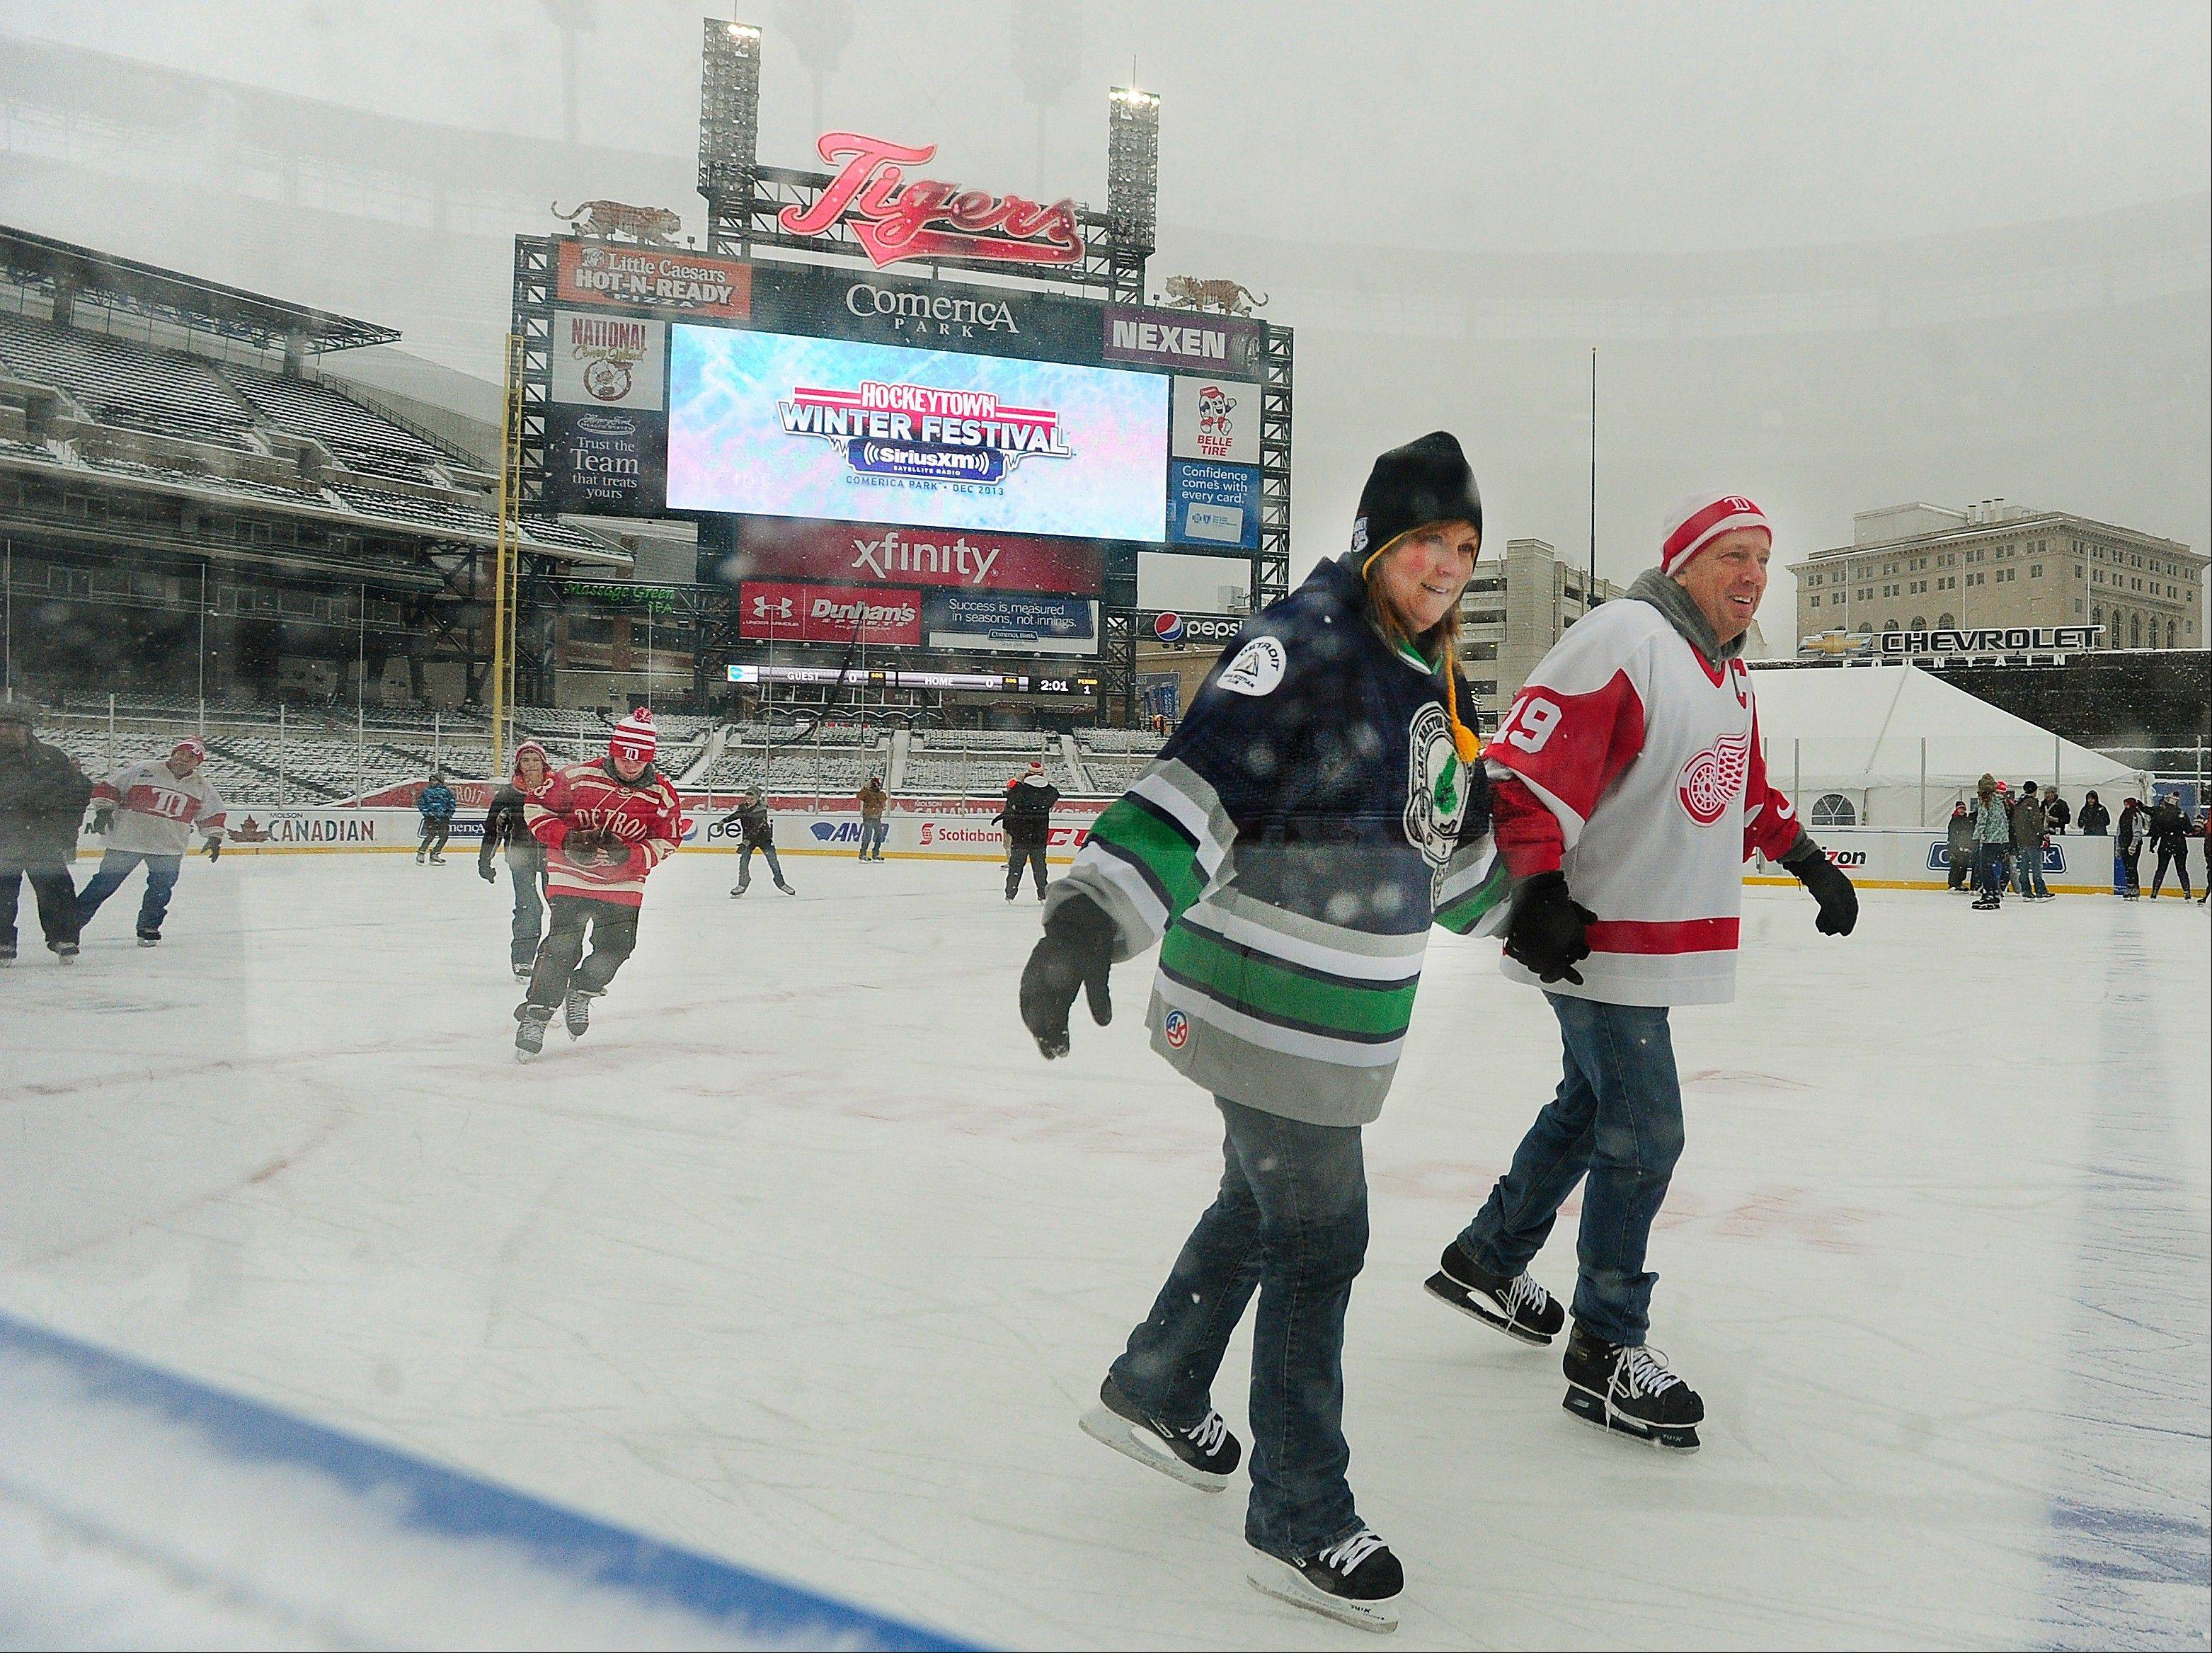 The cold that hovered over much of the country wasn�t all hardship Sunday. From left, Valerie MacIsaac and Joseph Grutza skate at Comerica Park in Detroit.